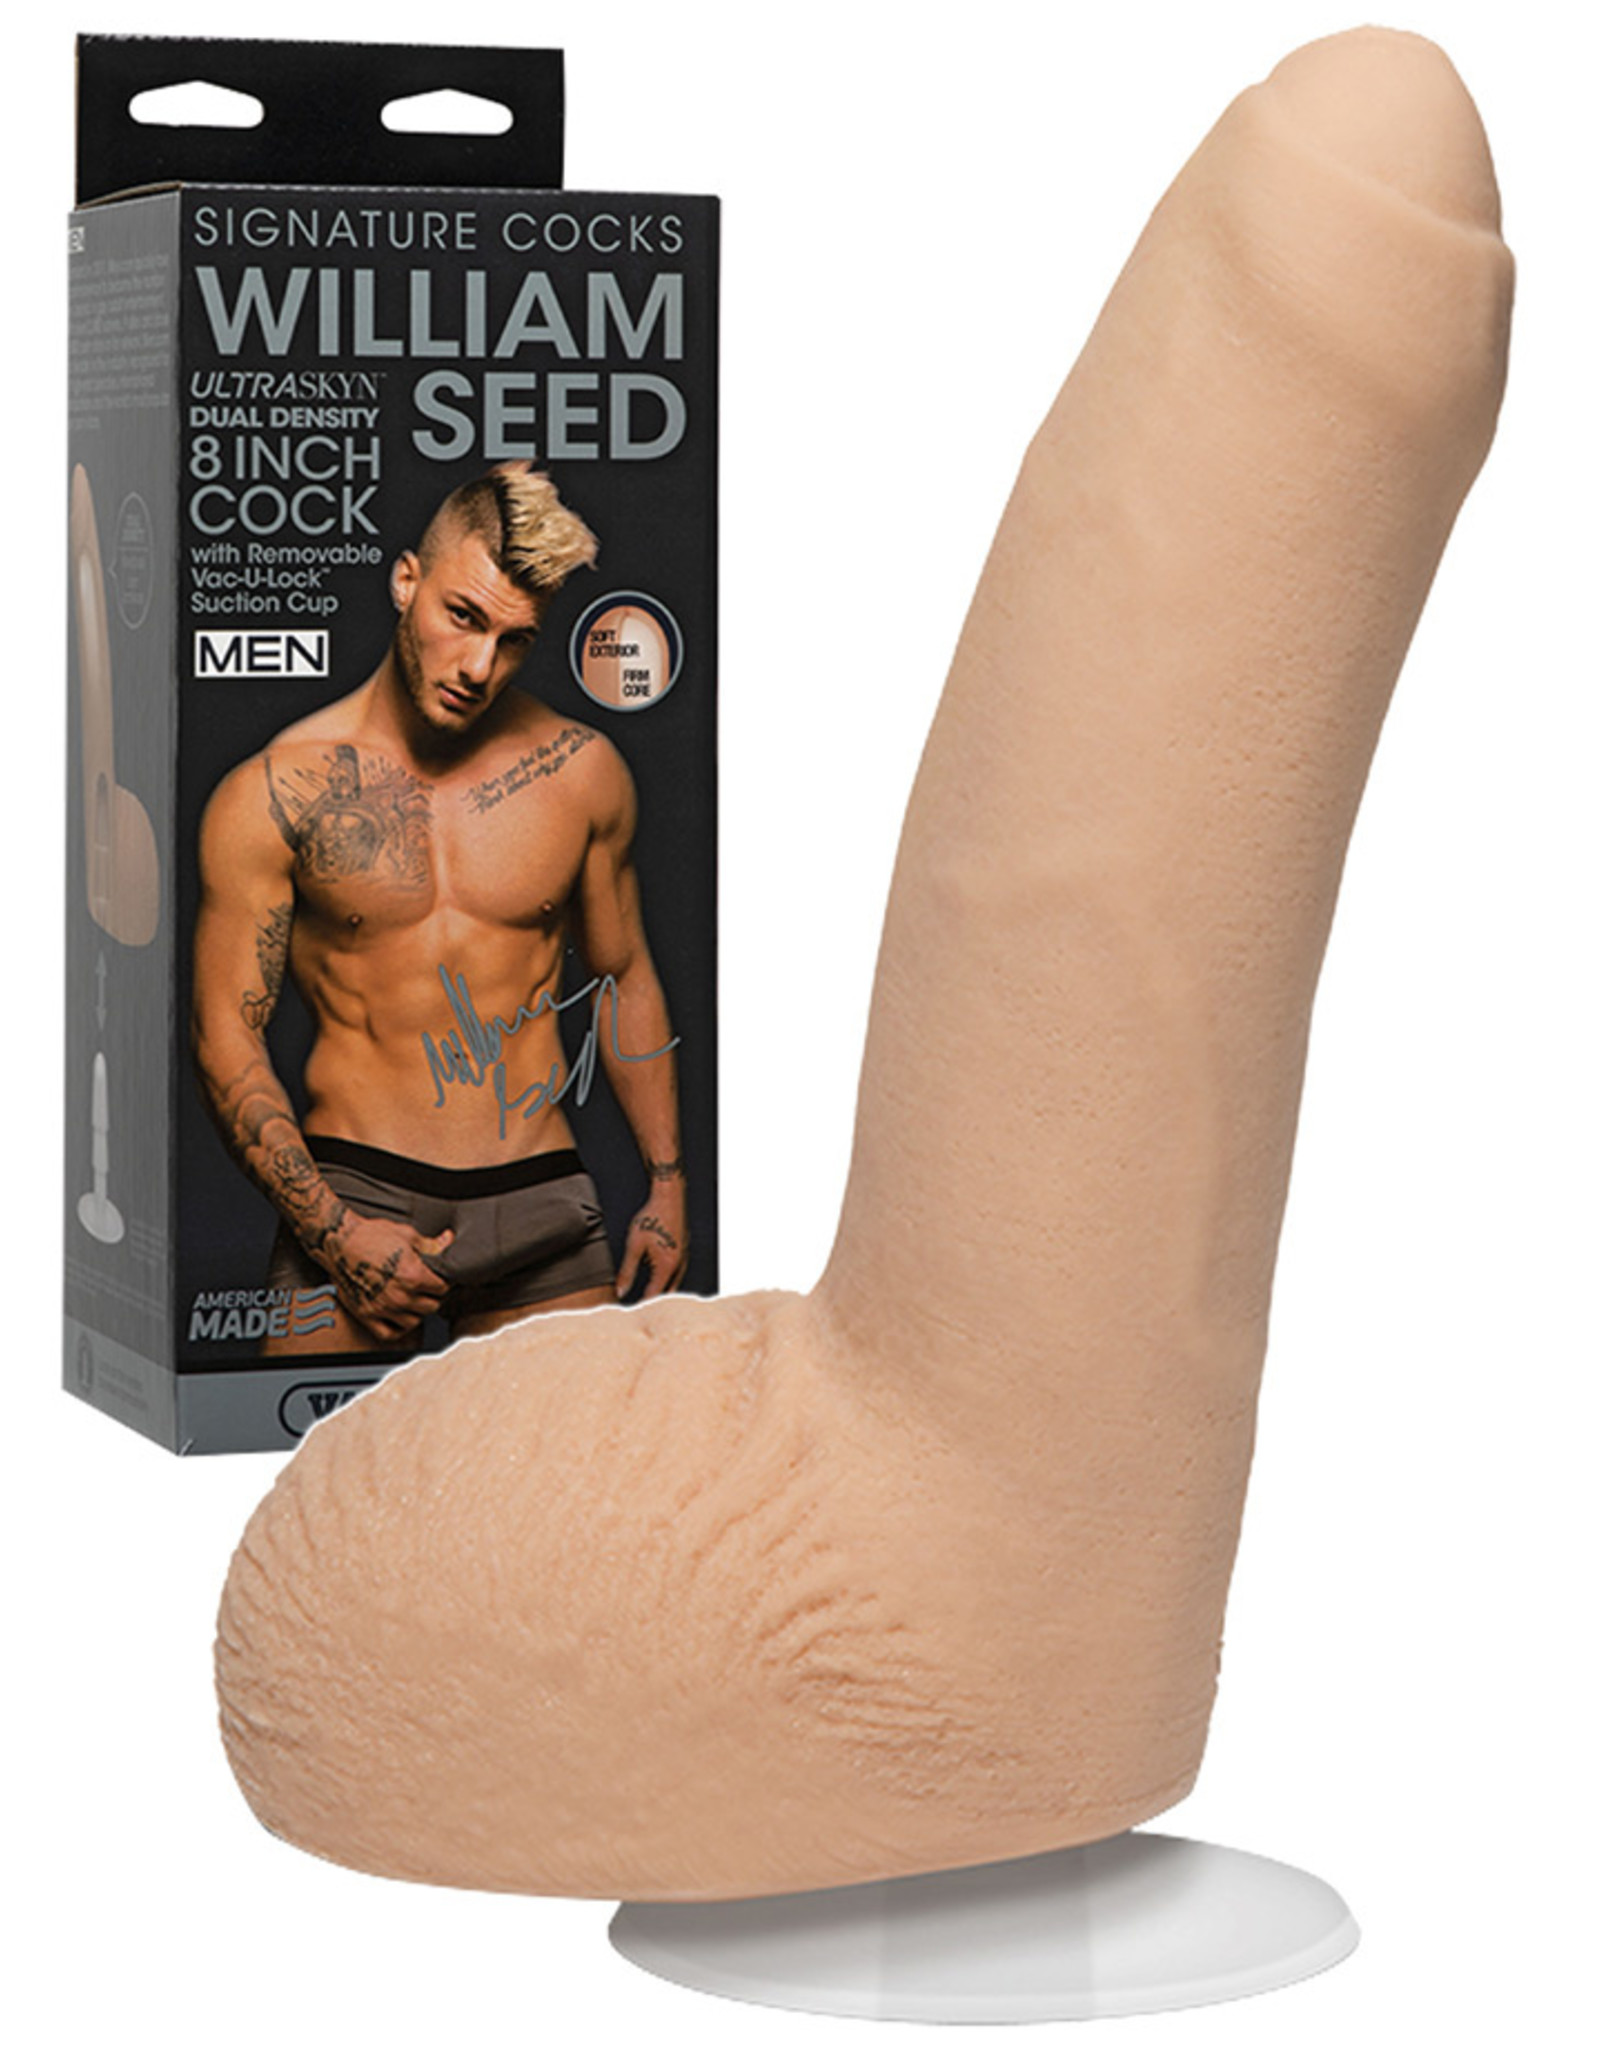 Signature Cocks - William Seed